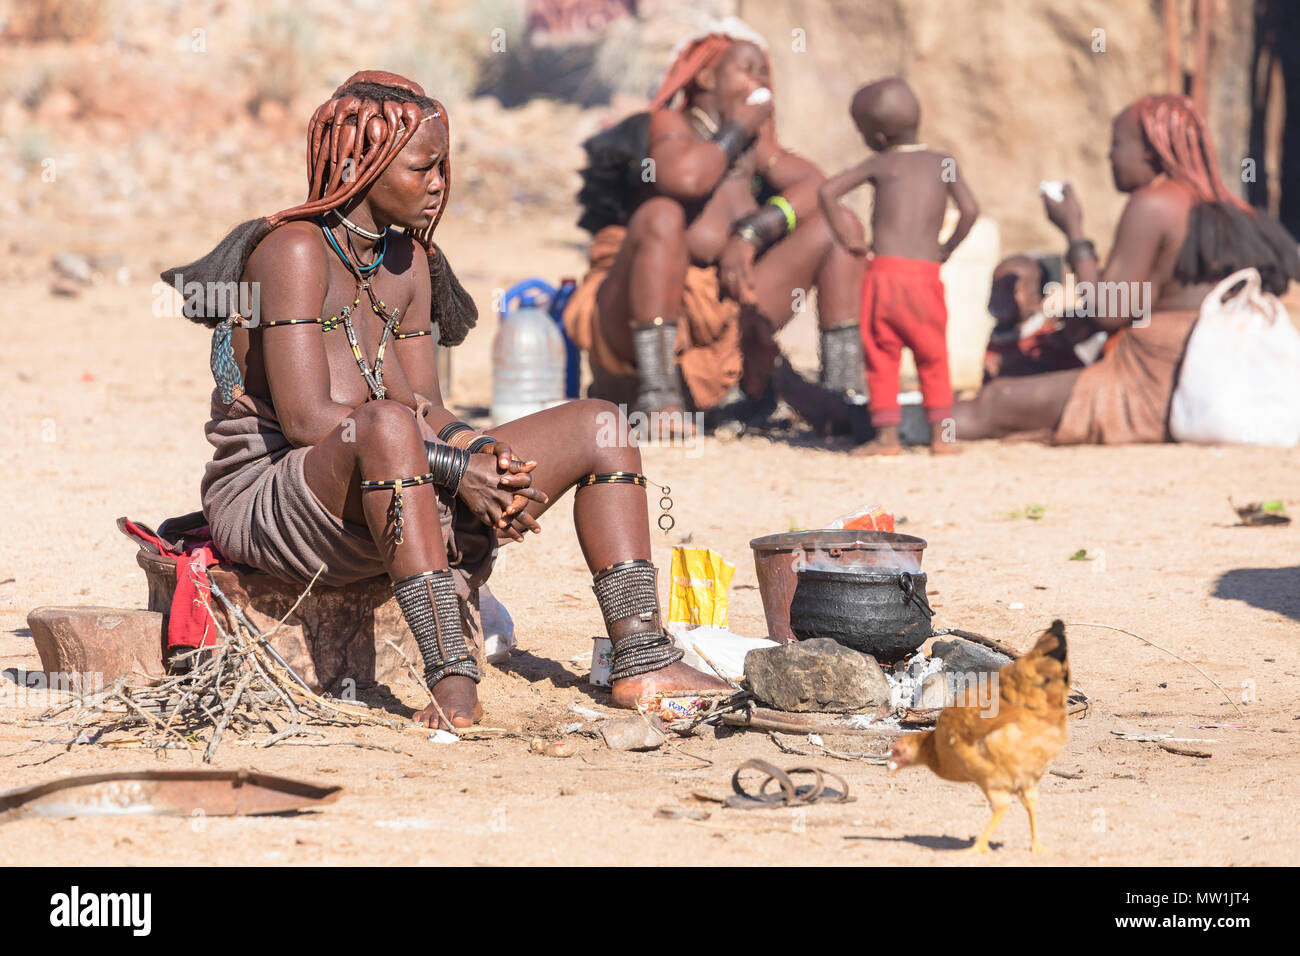 Himba, tribal village, Namibia, Africa - Stock Image